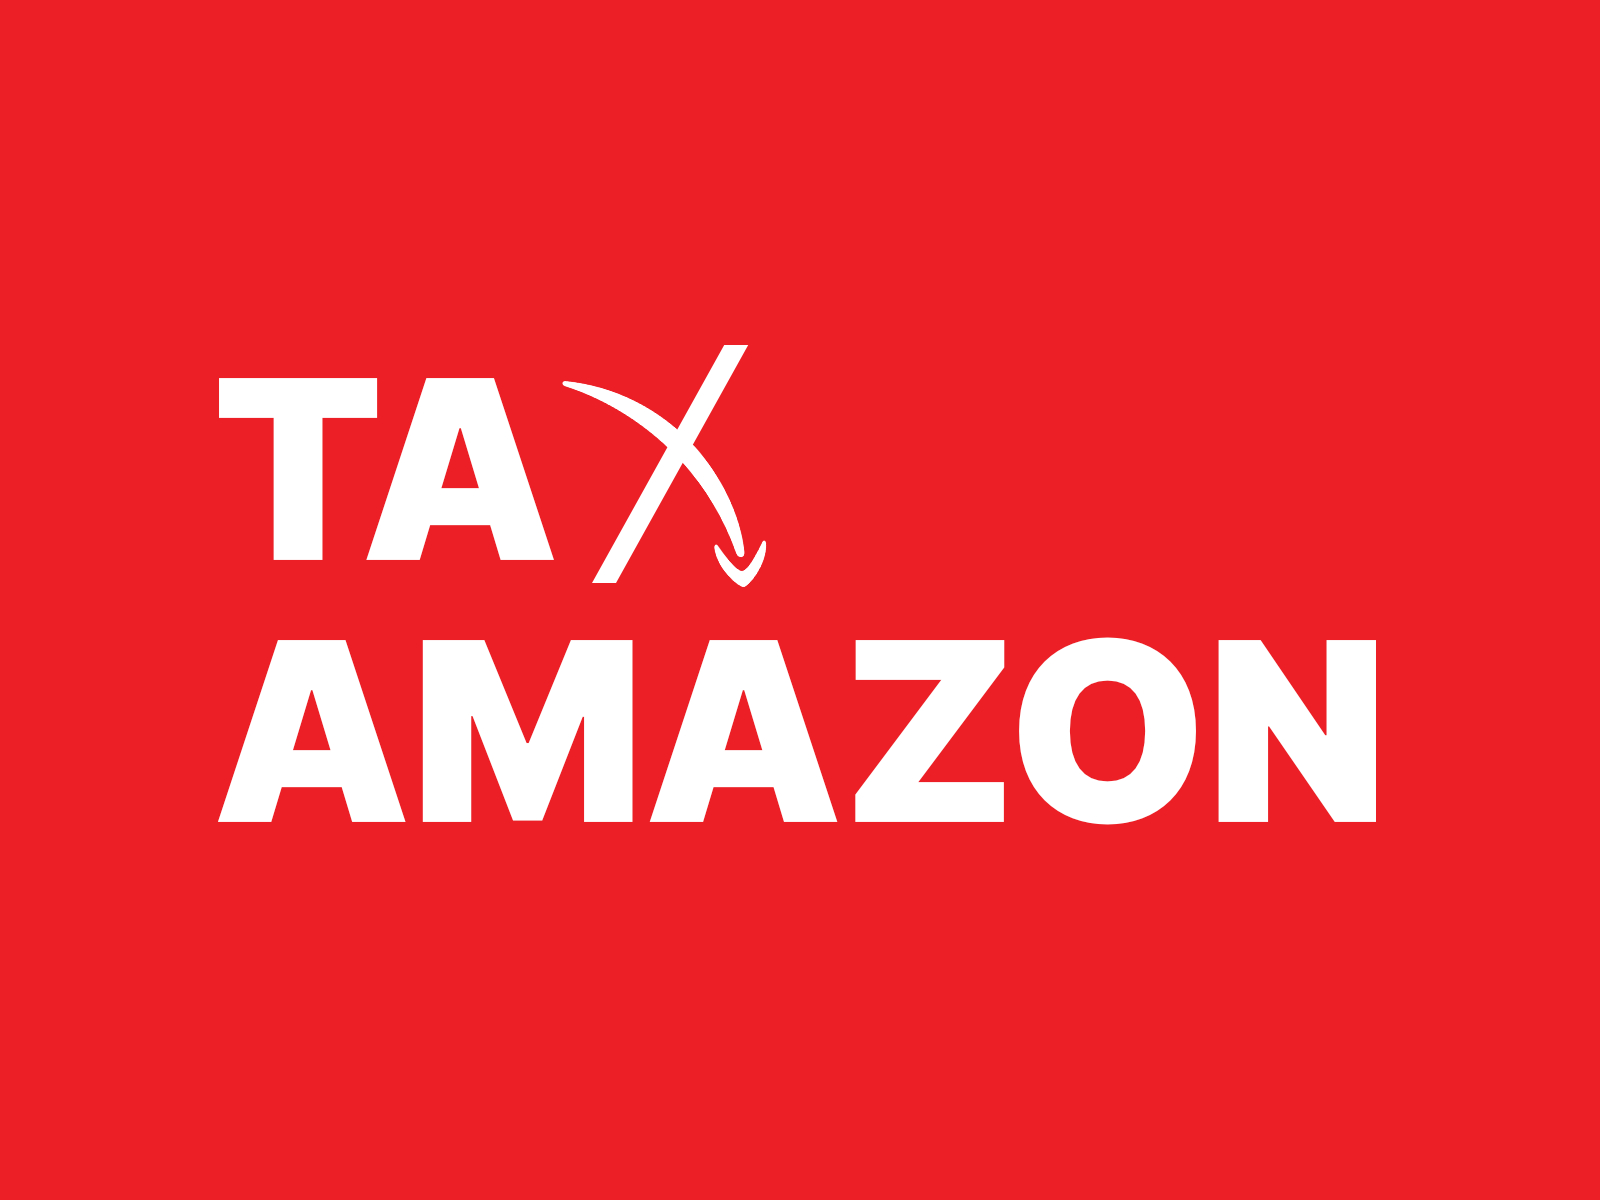 """Tax Amazon logo, playing off the imagery of Amazon's """"smile"""" into a frown"""